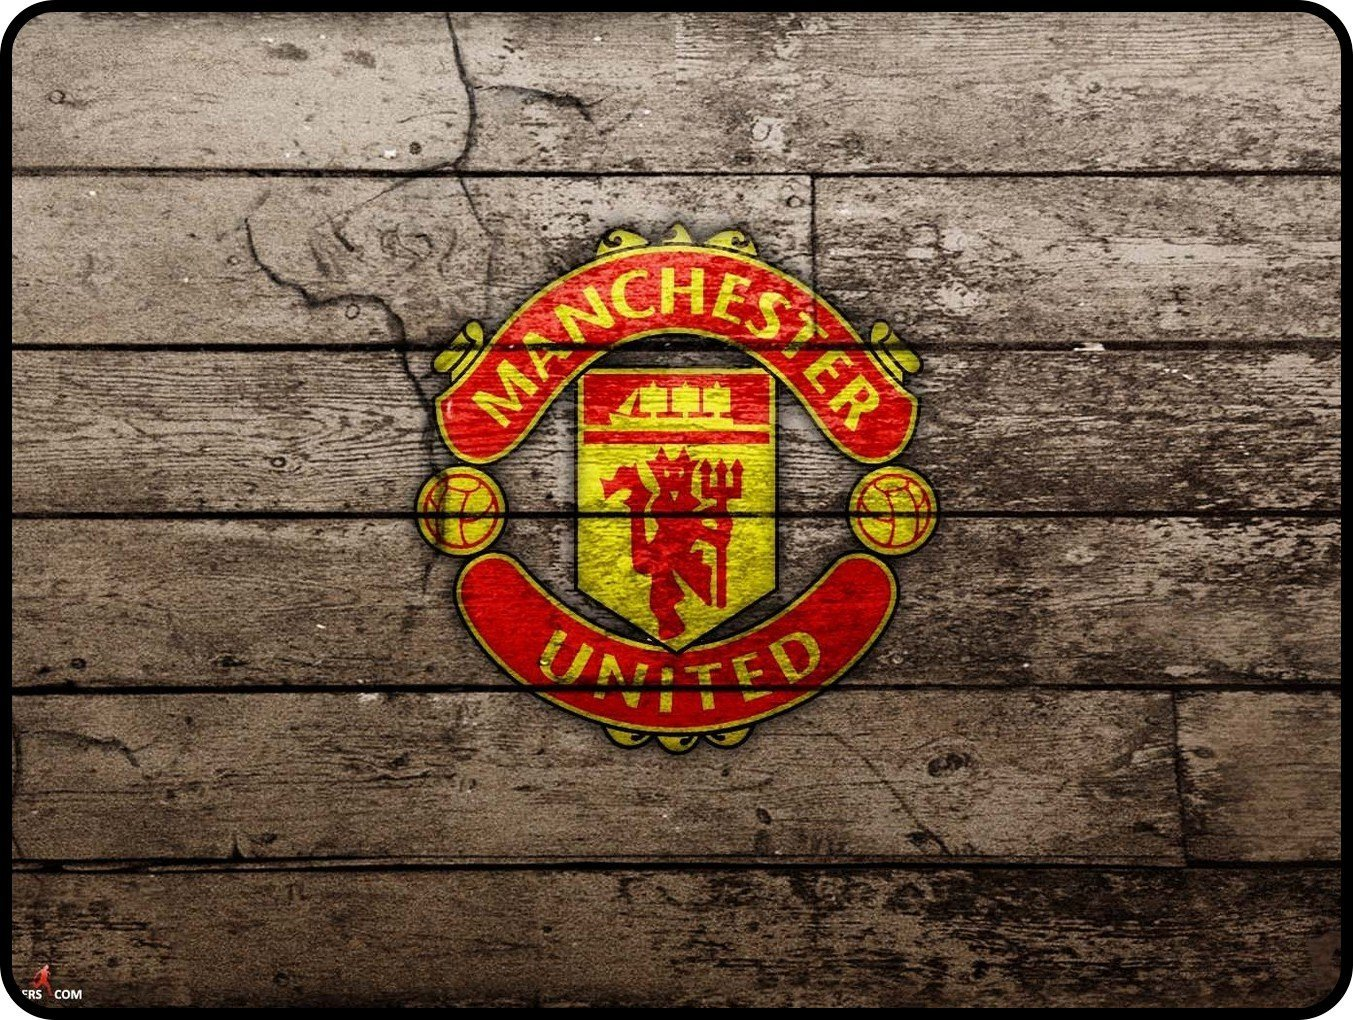 Best Non-slip Rubber Base - Manchester United F.C. MANCHESTER UNITED Mousepads 300x250x3mm(11.80x9.84x0.12inch)